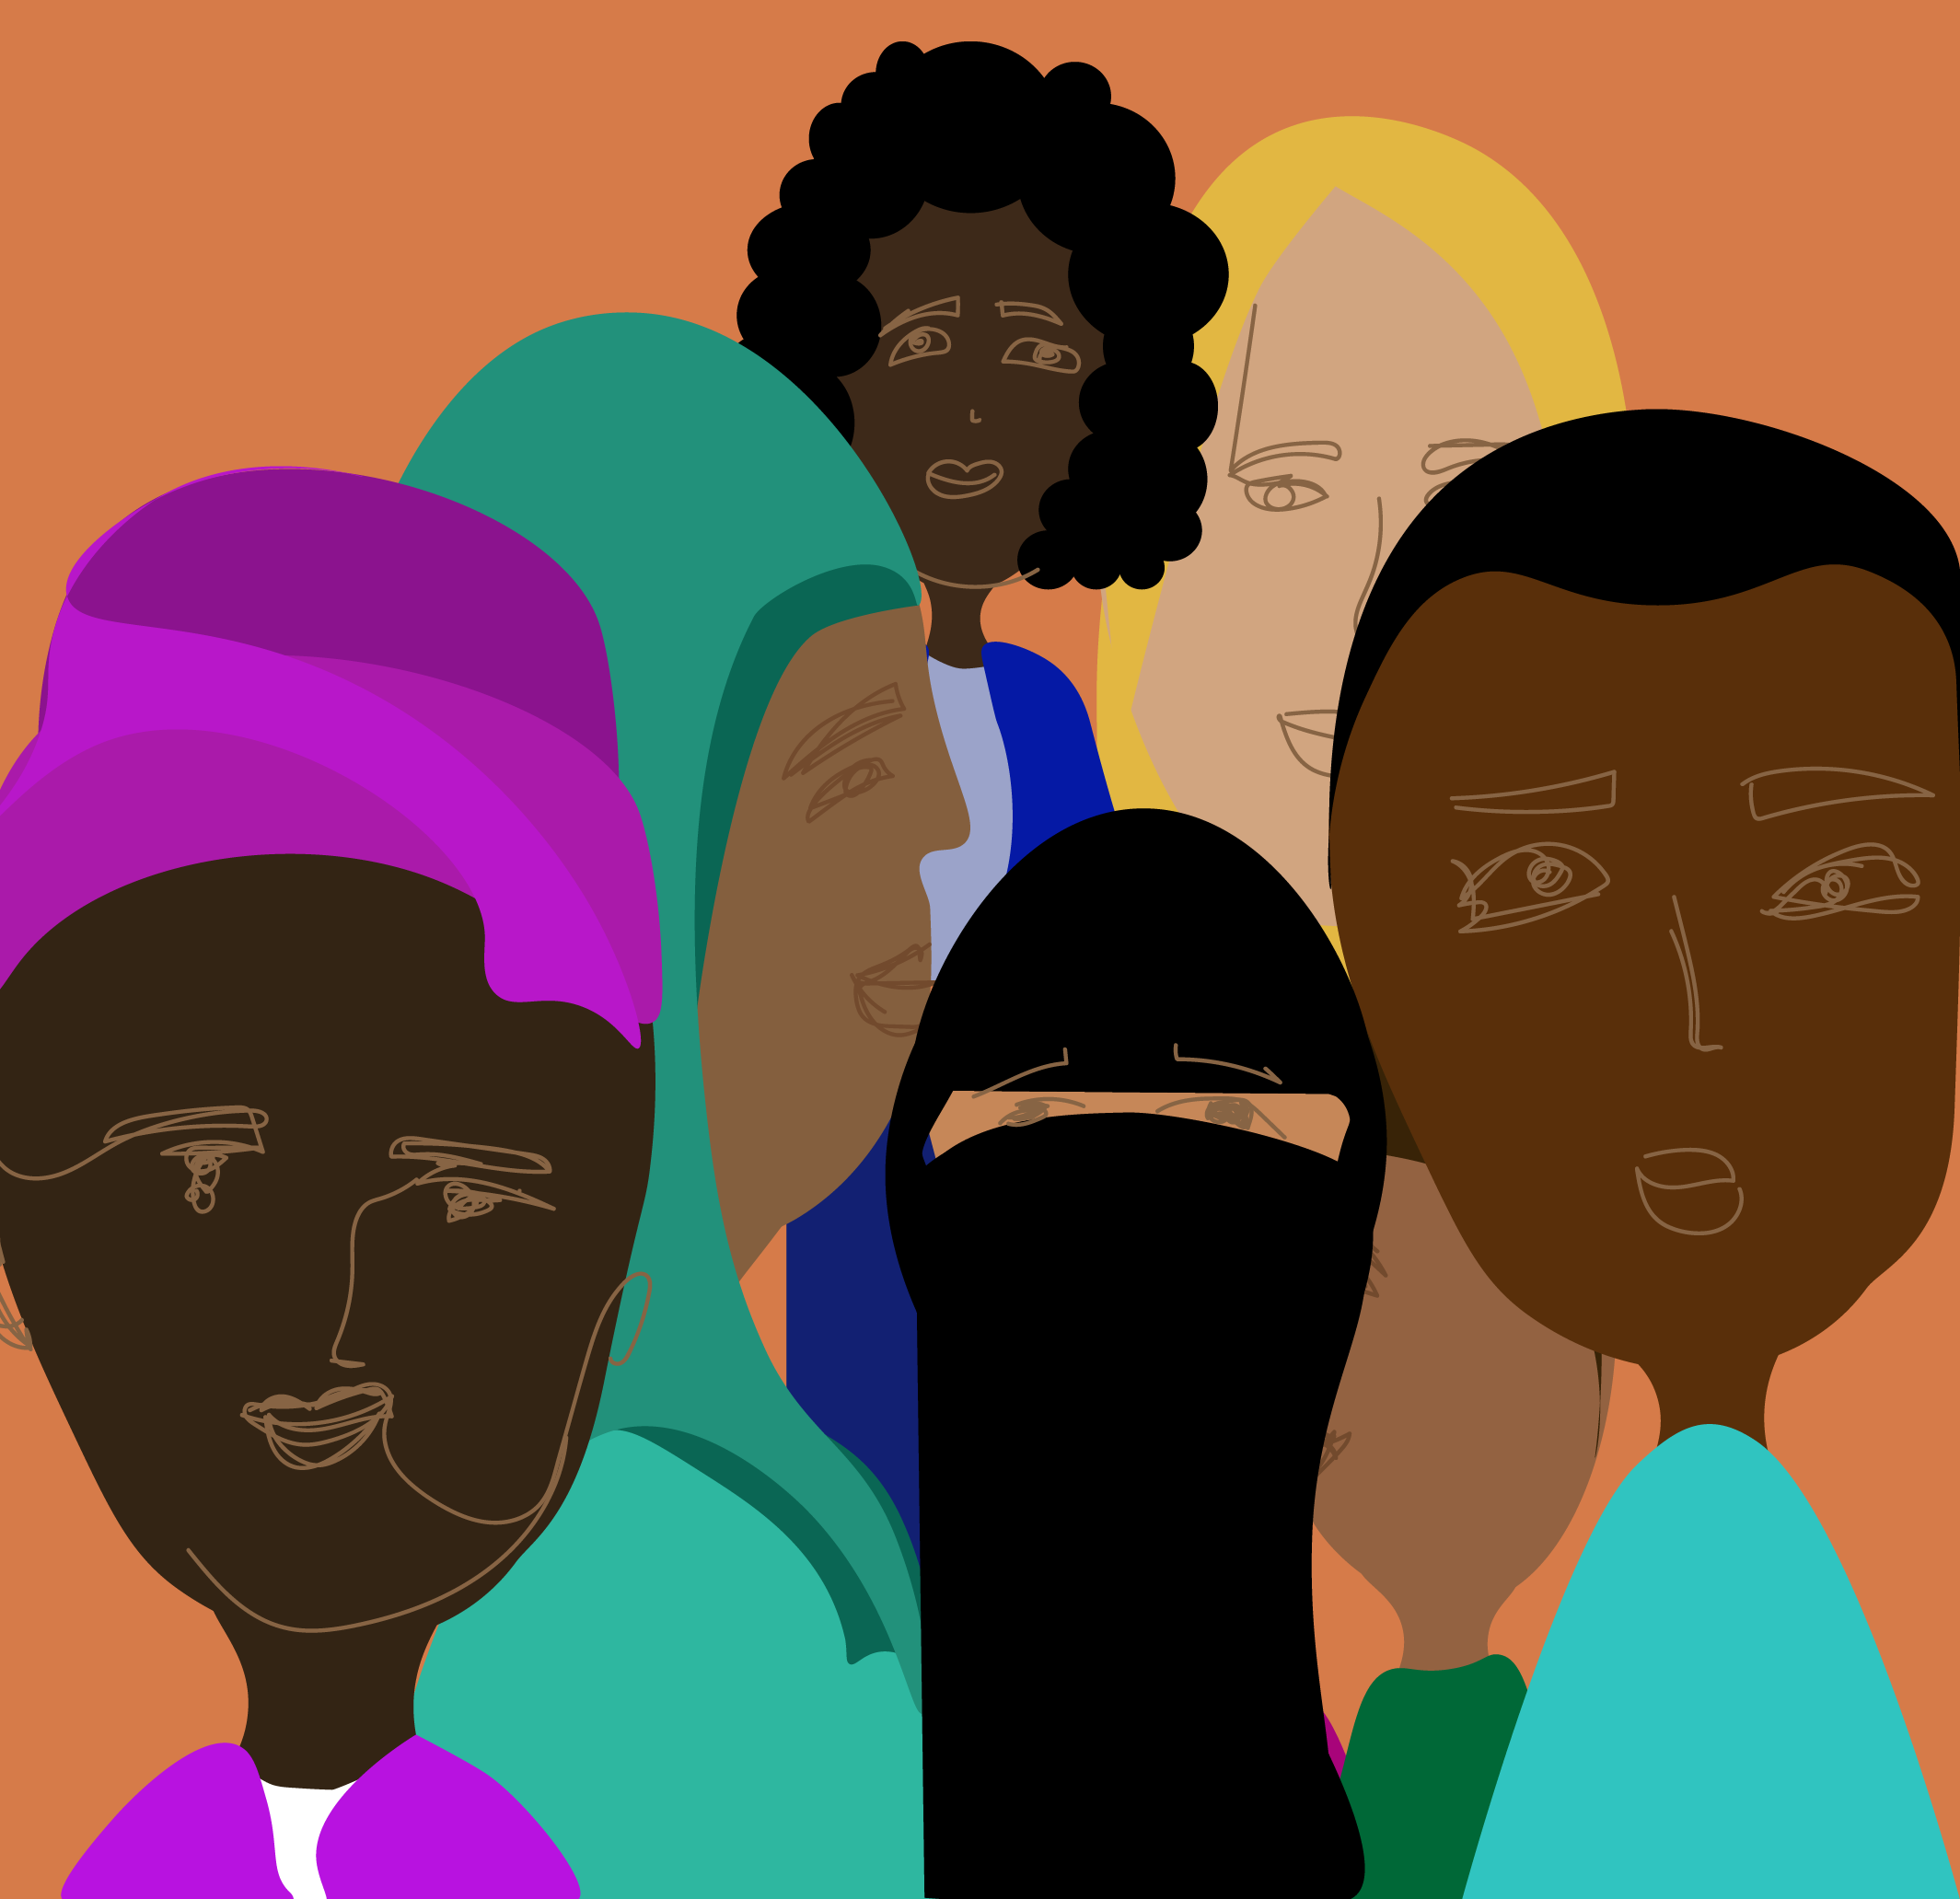 Batten Community people of all color illustration